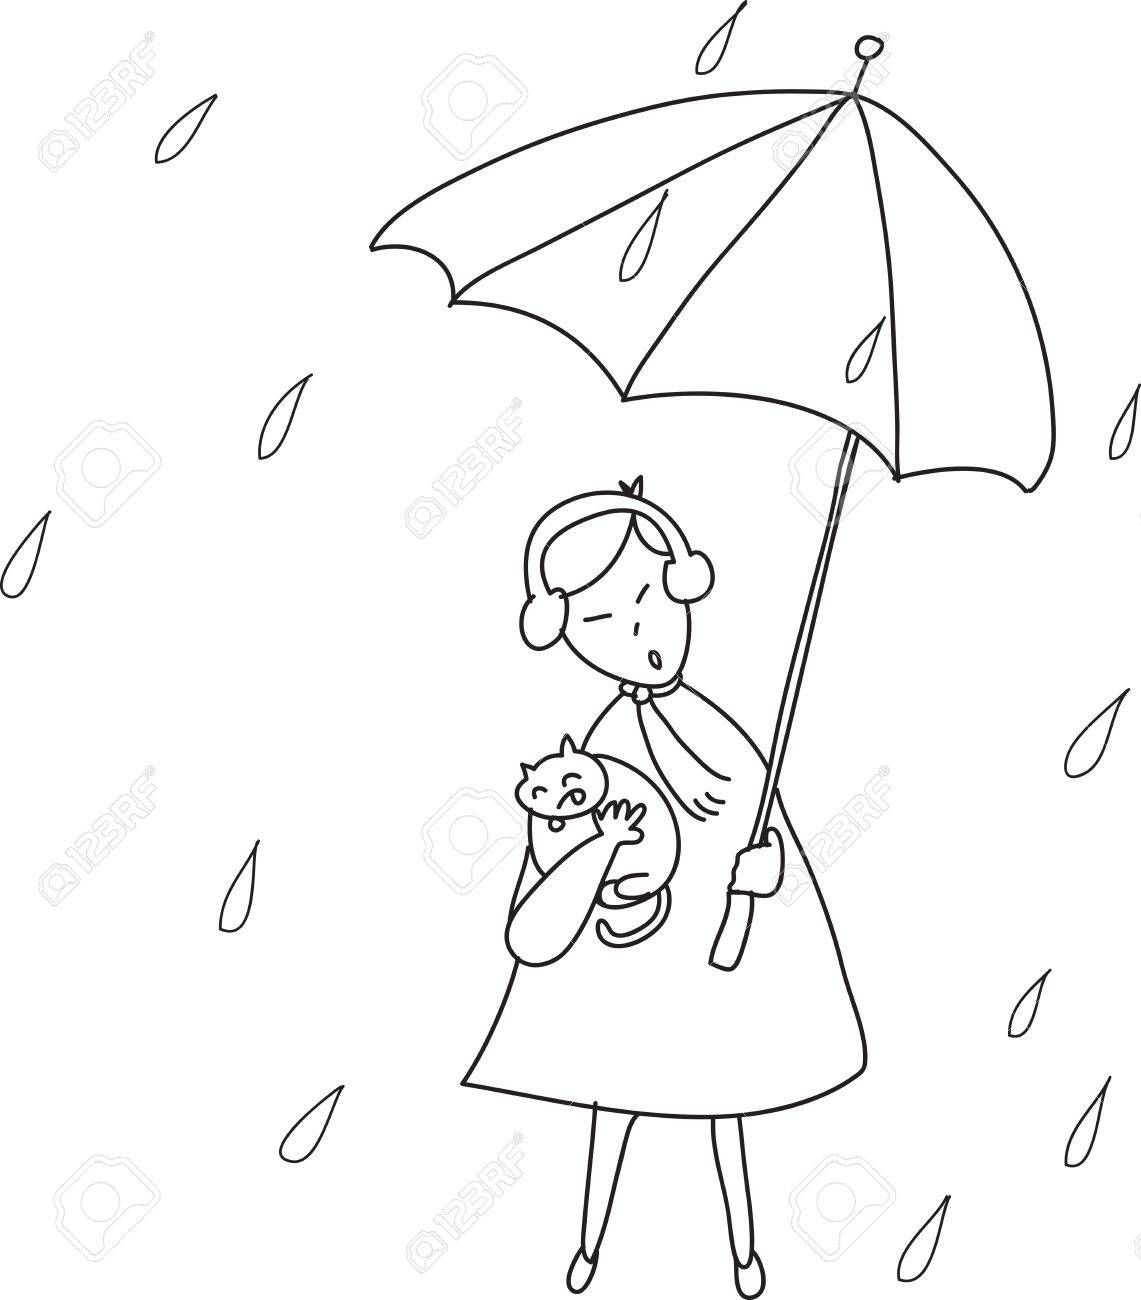 1141x1300 Freehand Sketch Cartoon Girl Relaxing Under The Rain Illustration